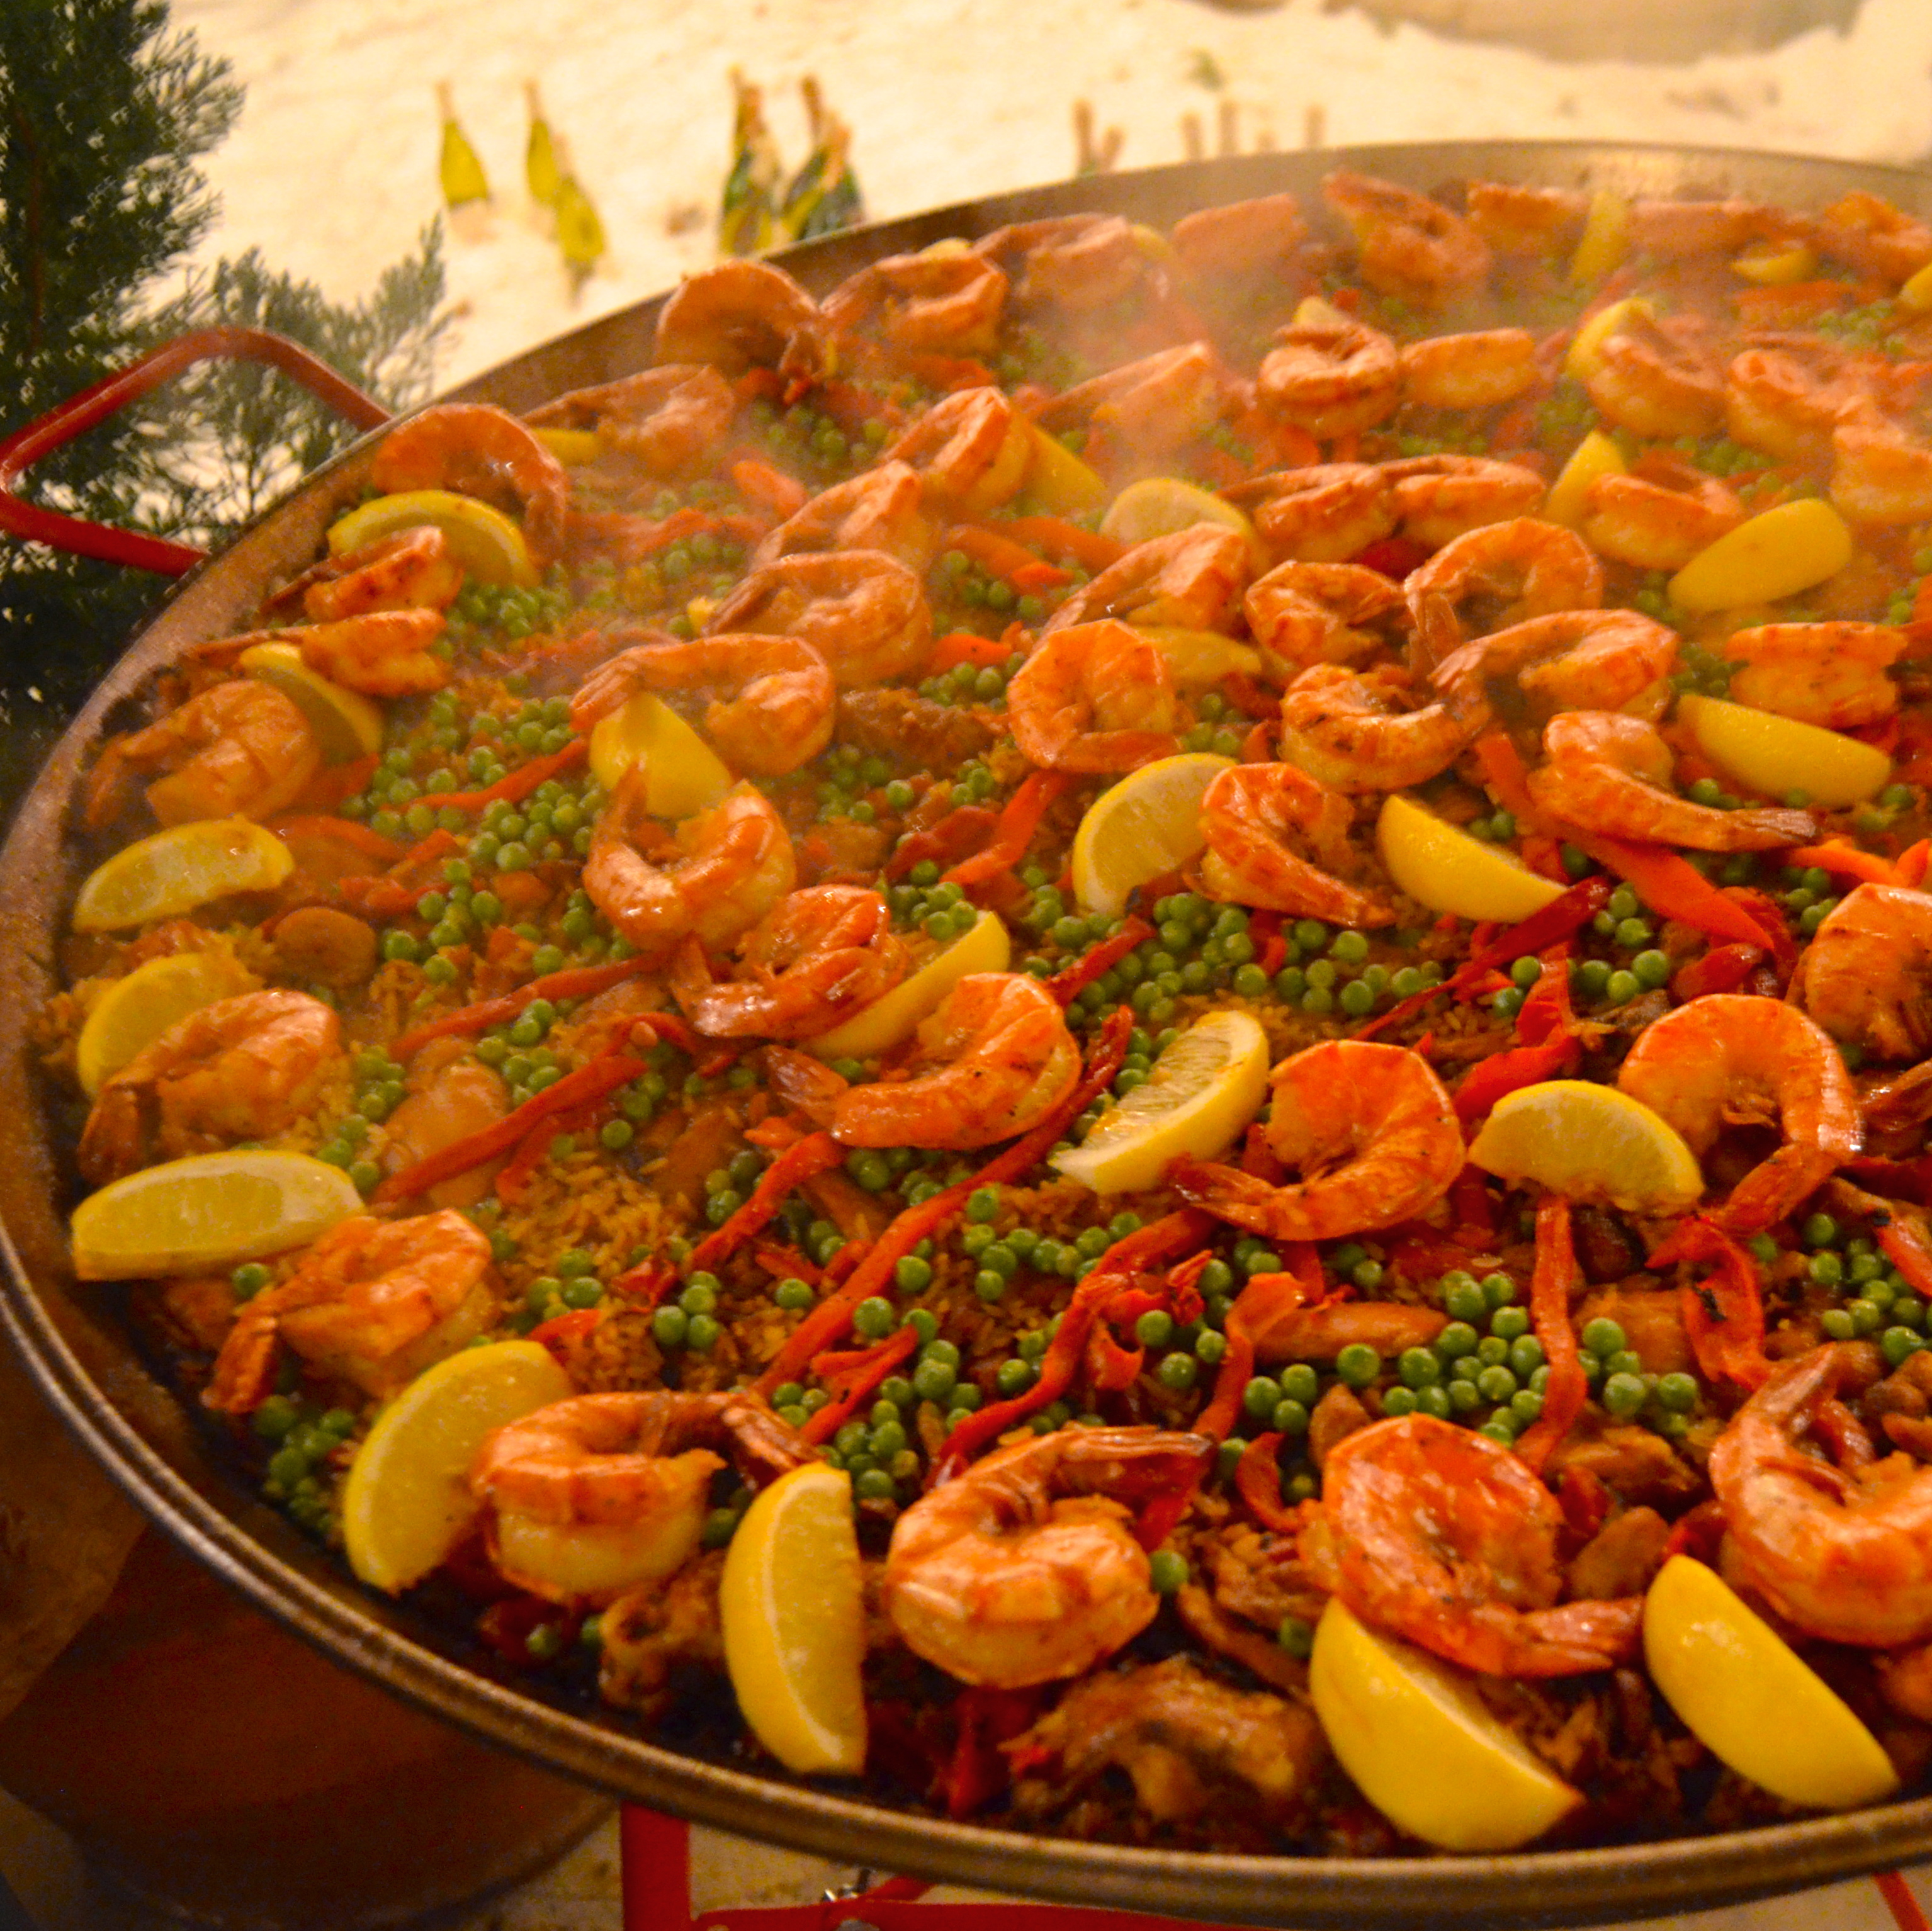 Spanish Style christmas spanish style - how to make paella - after orange county